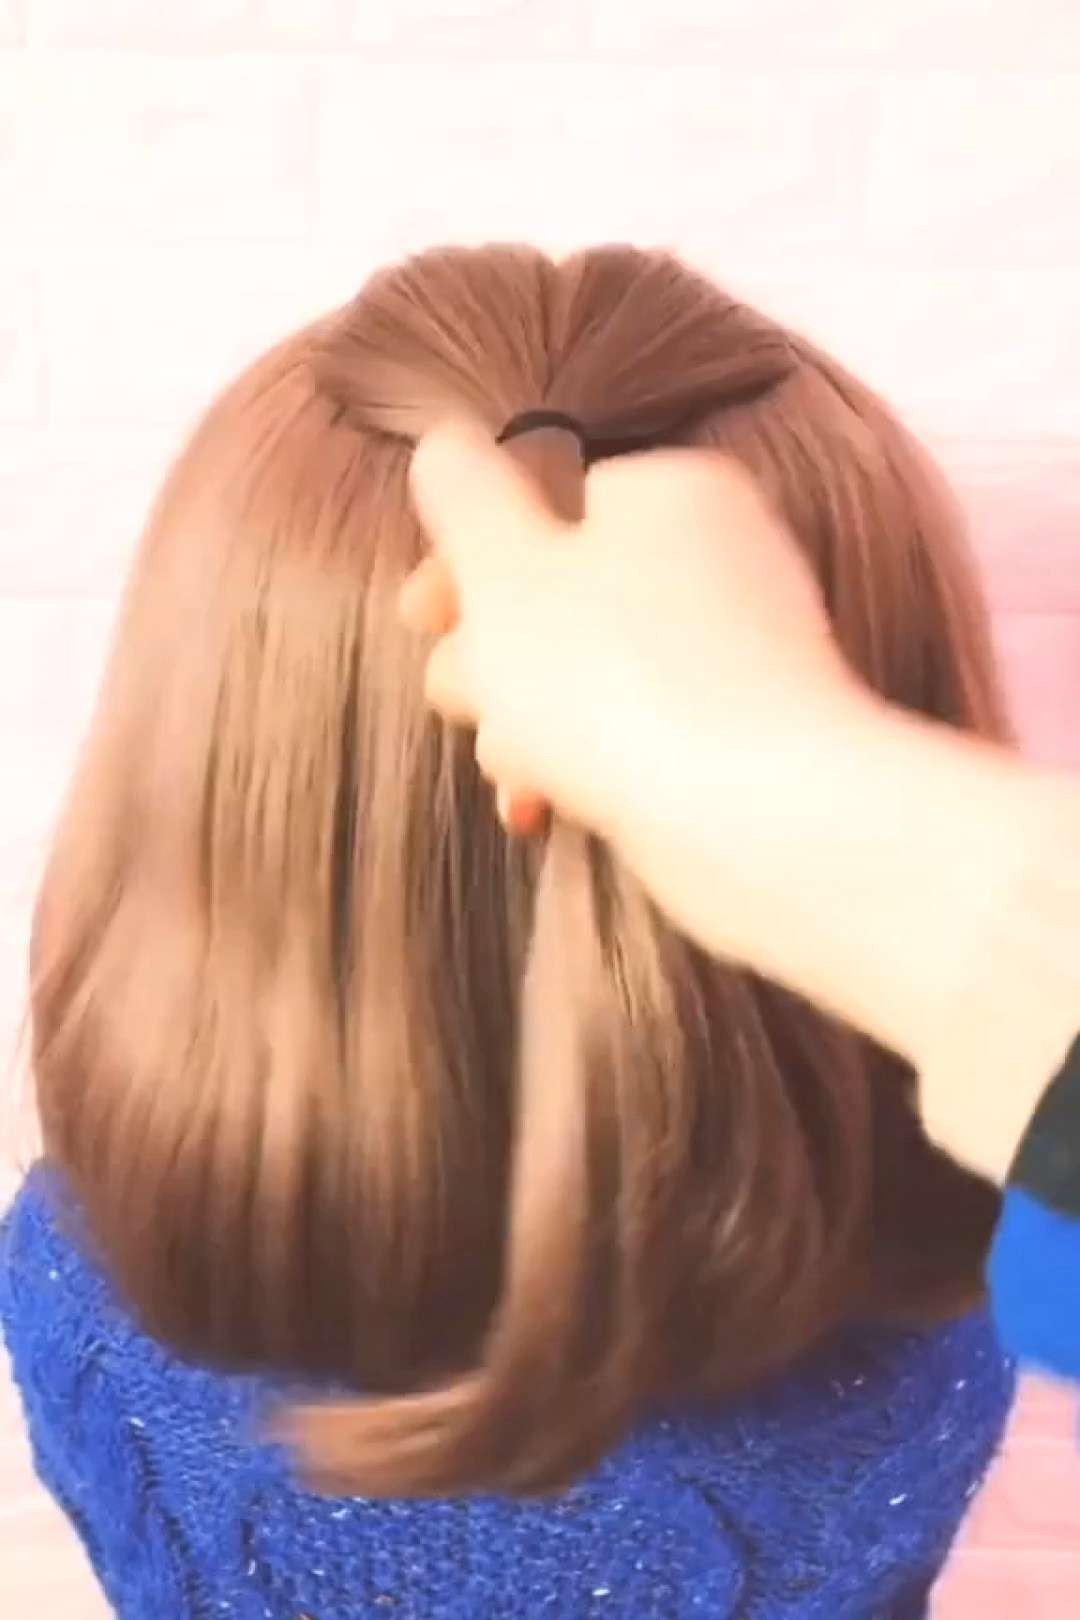 Nouveau  Absolument gratuit ongles videos Populaire,?Access all the Hairstyles - Hairstyl...